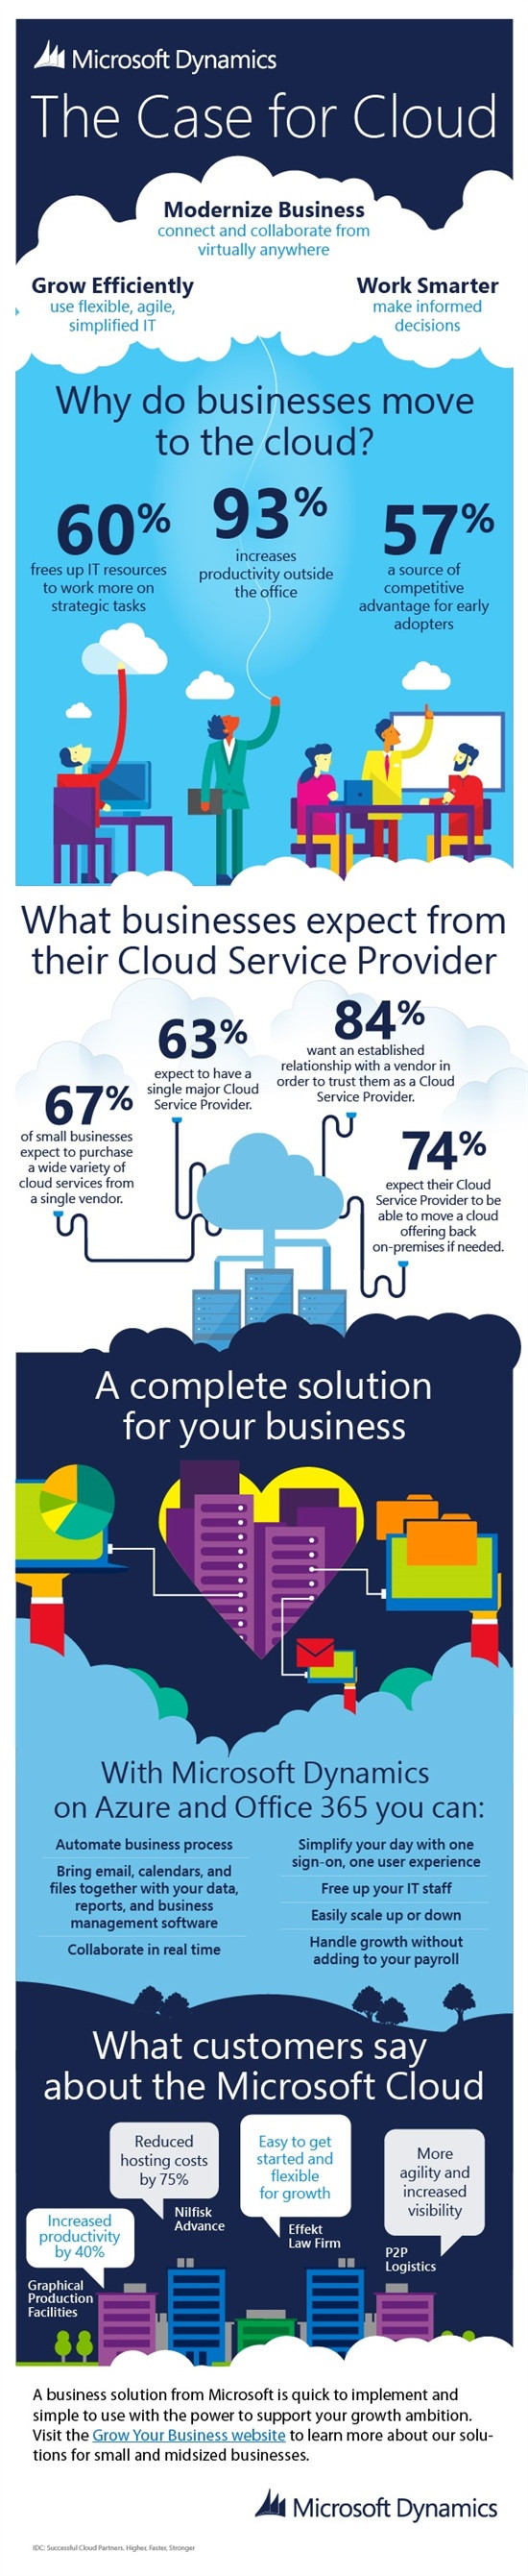 ERP in SMB_infographic_Case for Cloud_Final_june 2014 JPEG (Become a biz anywher